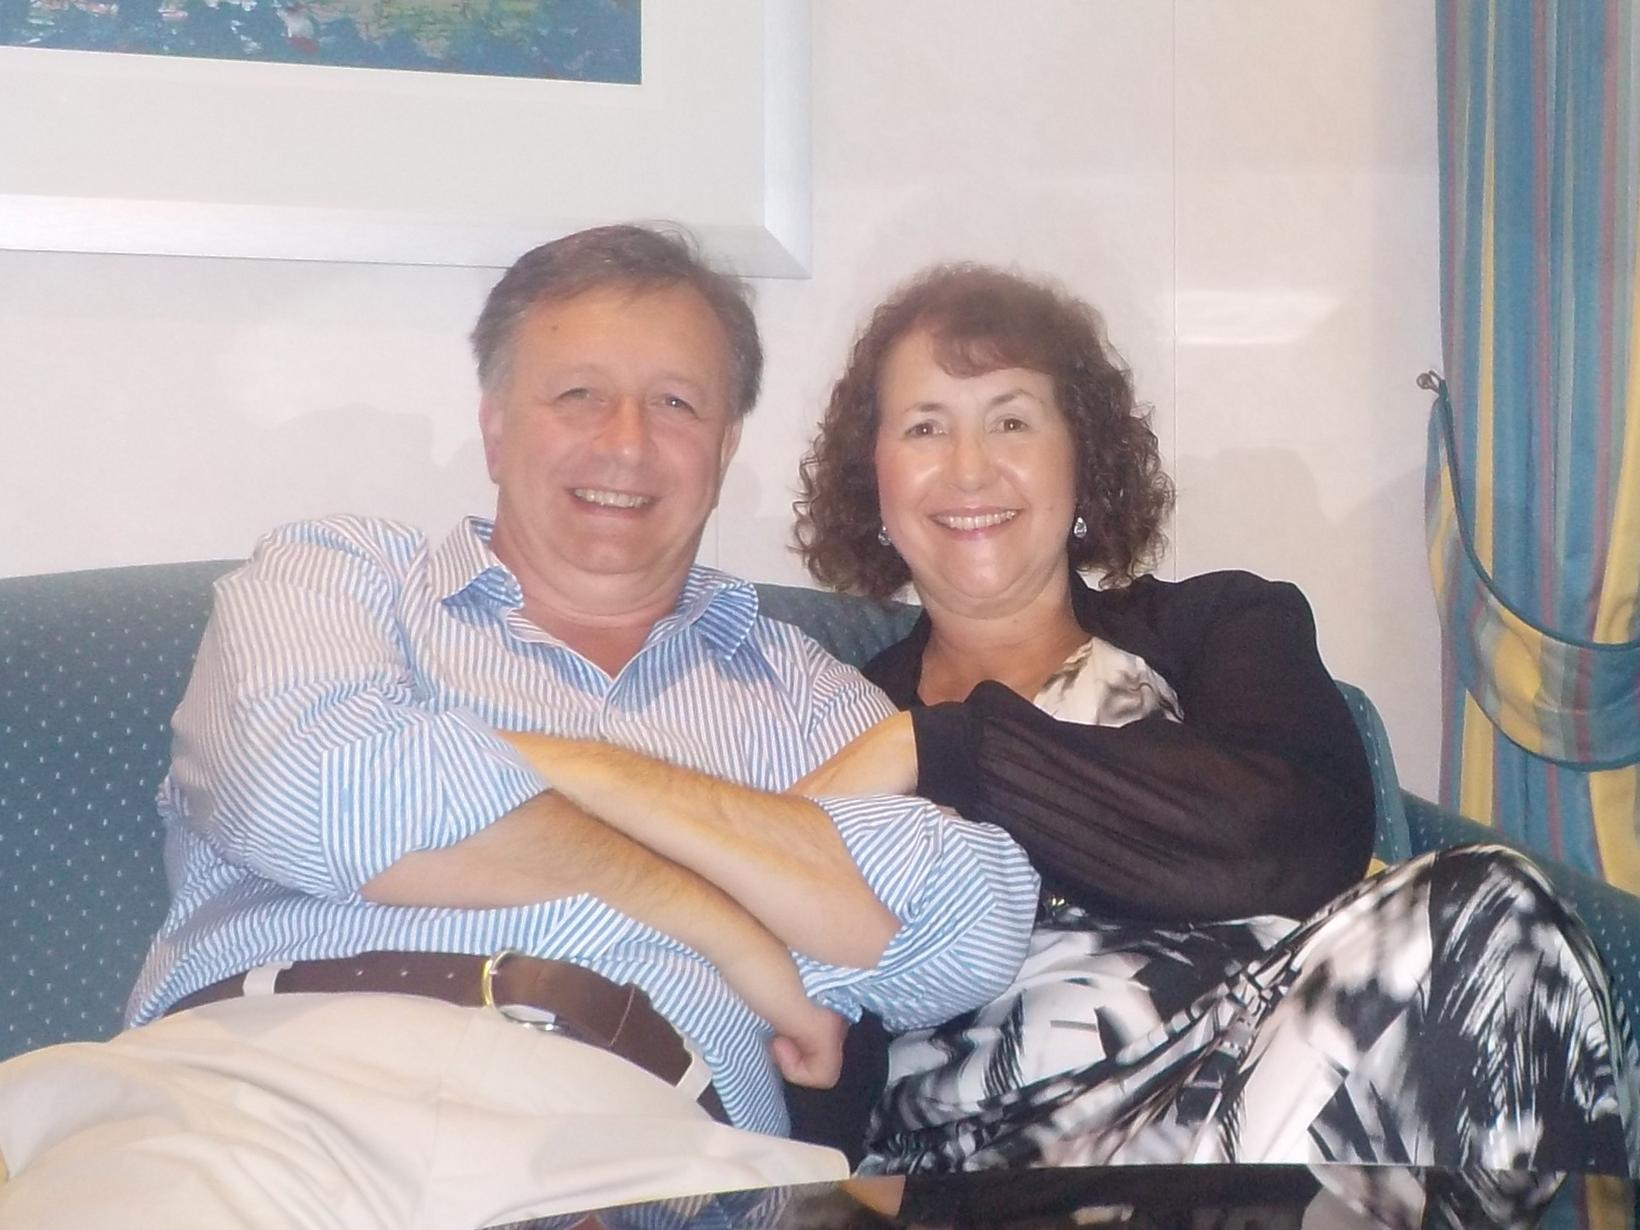 Janice & Terry from Christchurch, United Kingdom